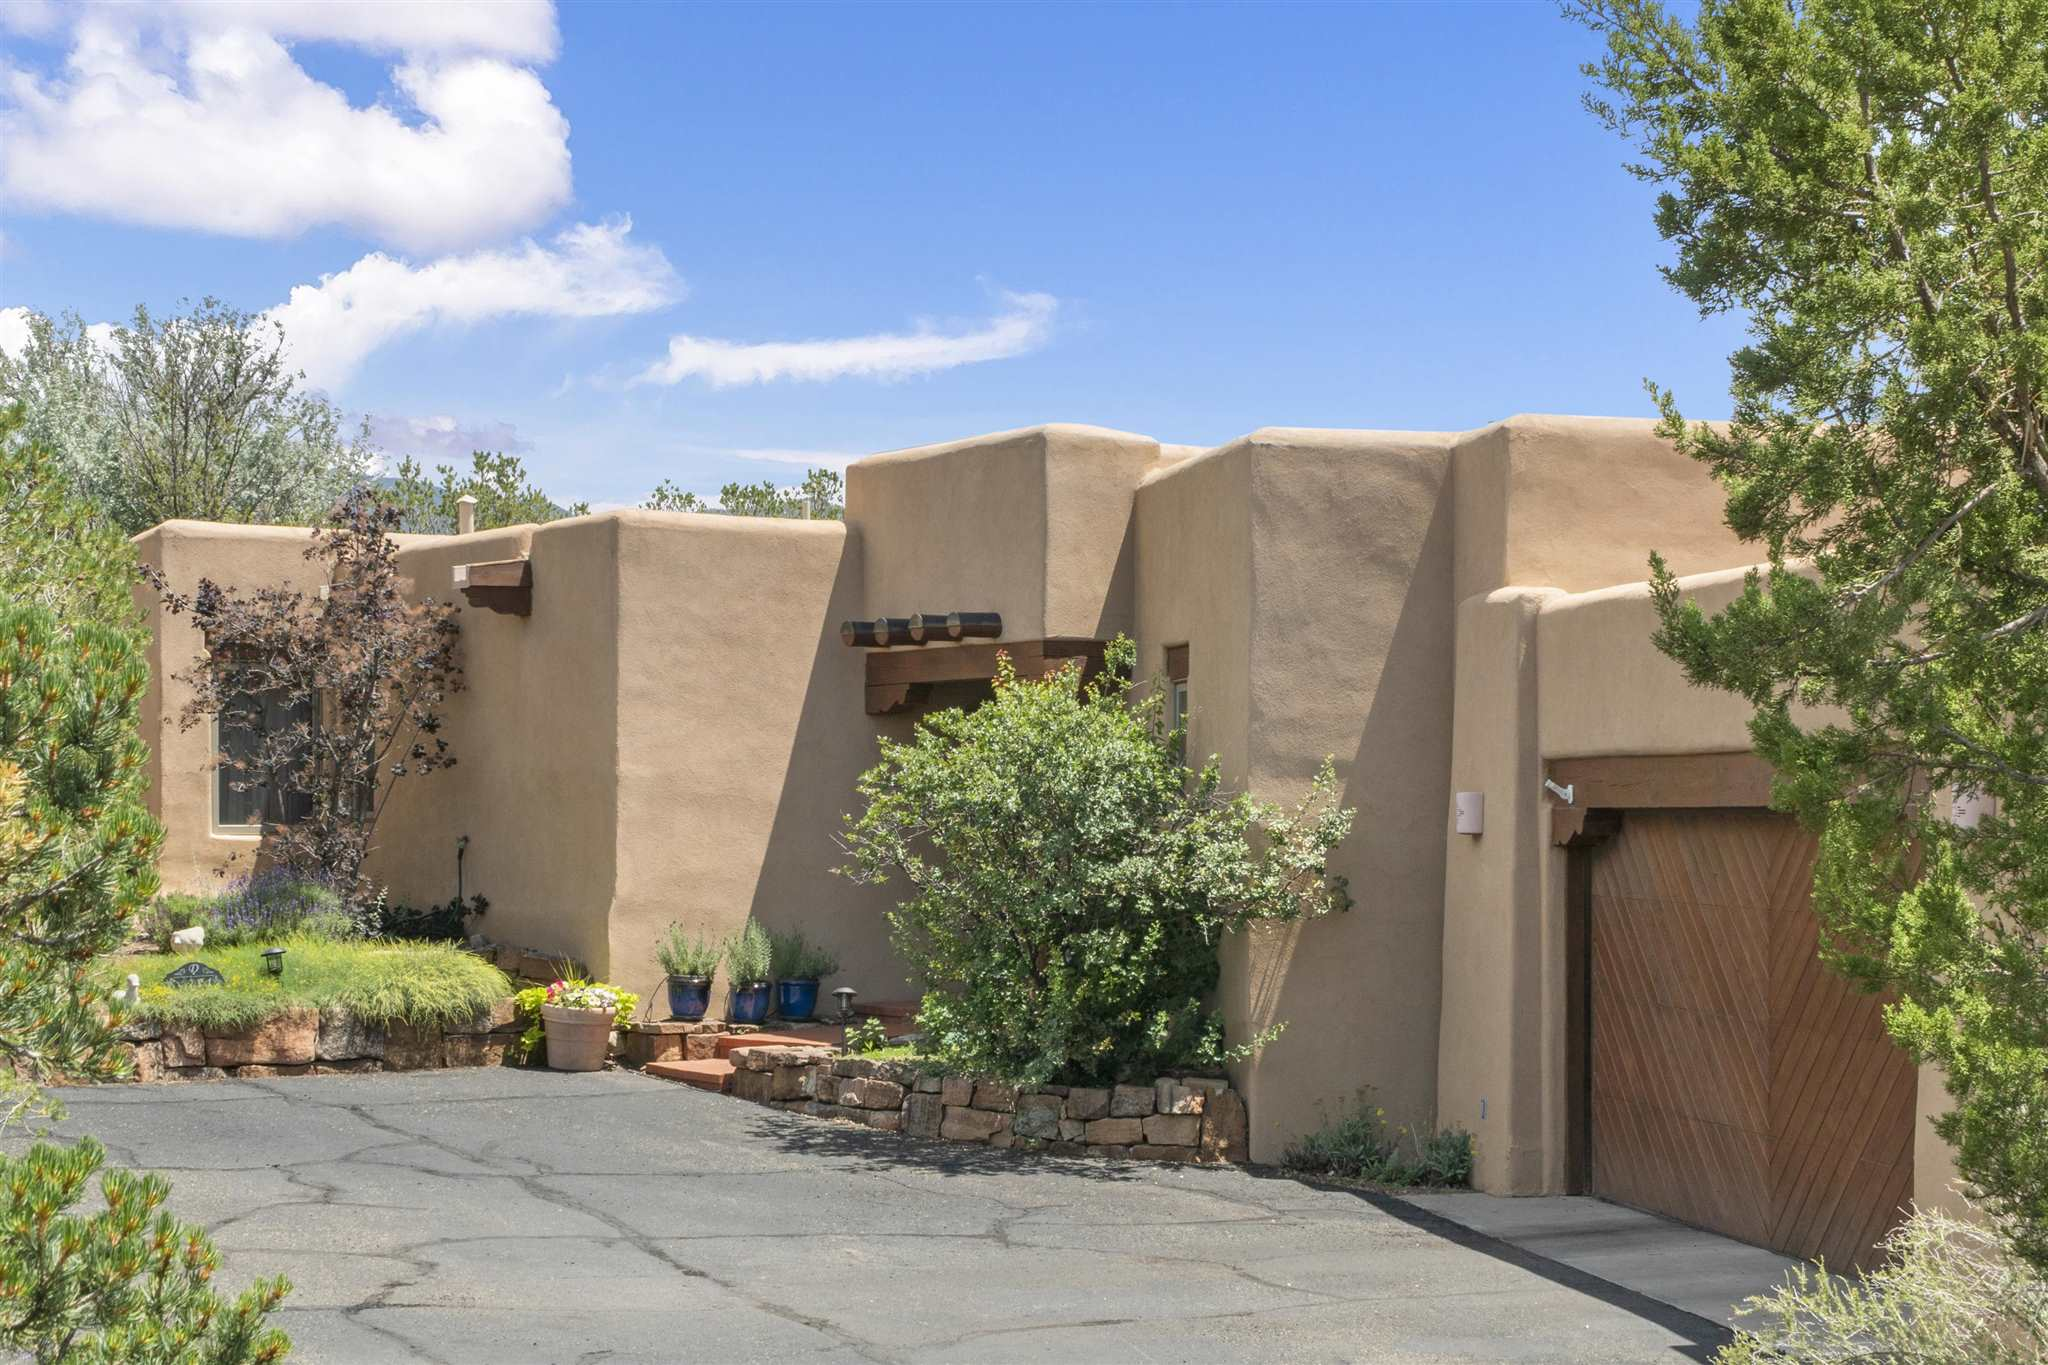 Very sweet home in coveted Las Barrancas northside neighborhood built by John Dieterich as his personal residence, immaculate condition, 2-3 BR, 2B, and darling patio with views.  Features include vigas, kiva fireplace, high ceilings, private location.